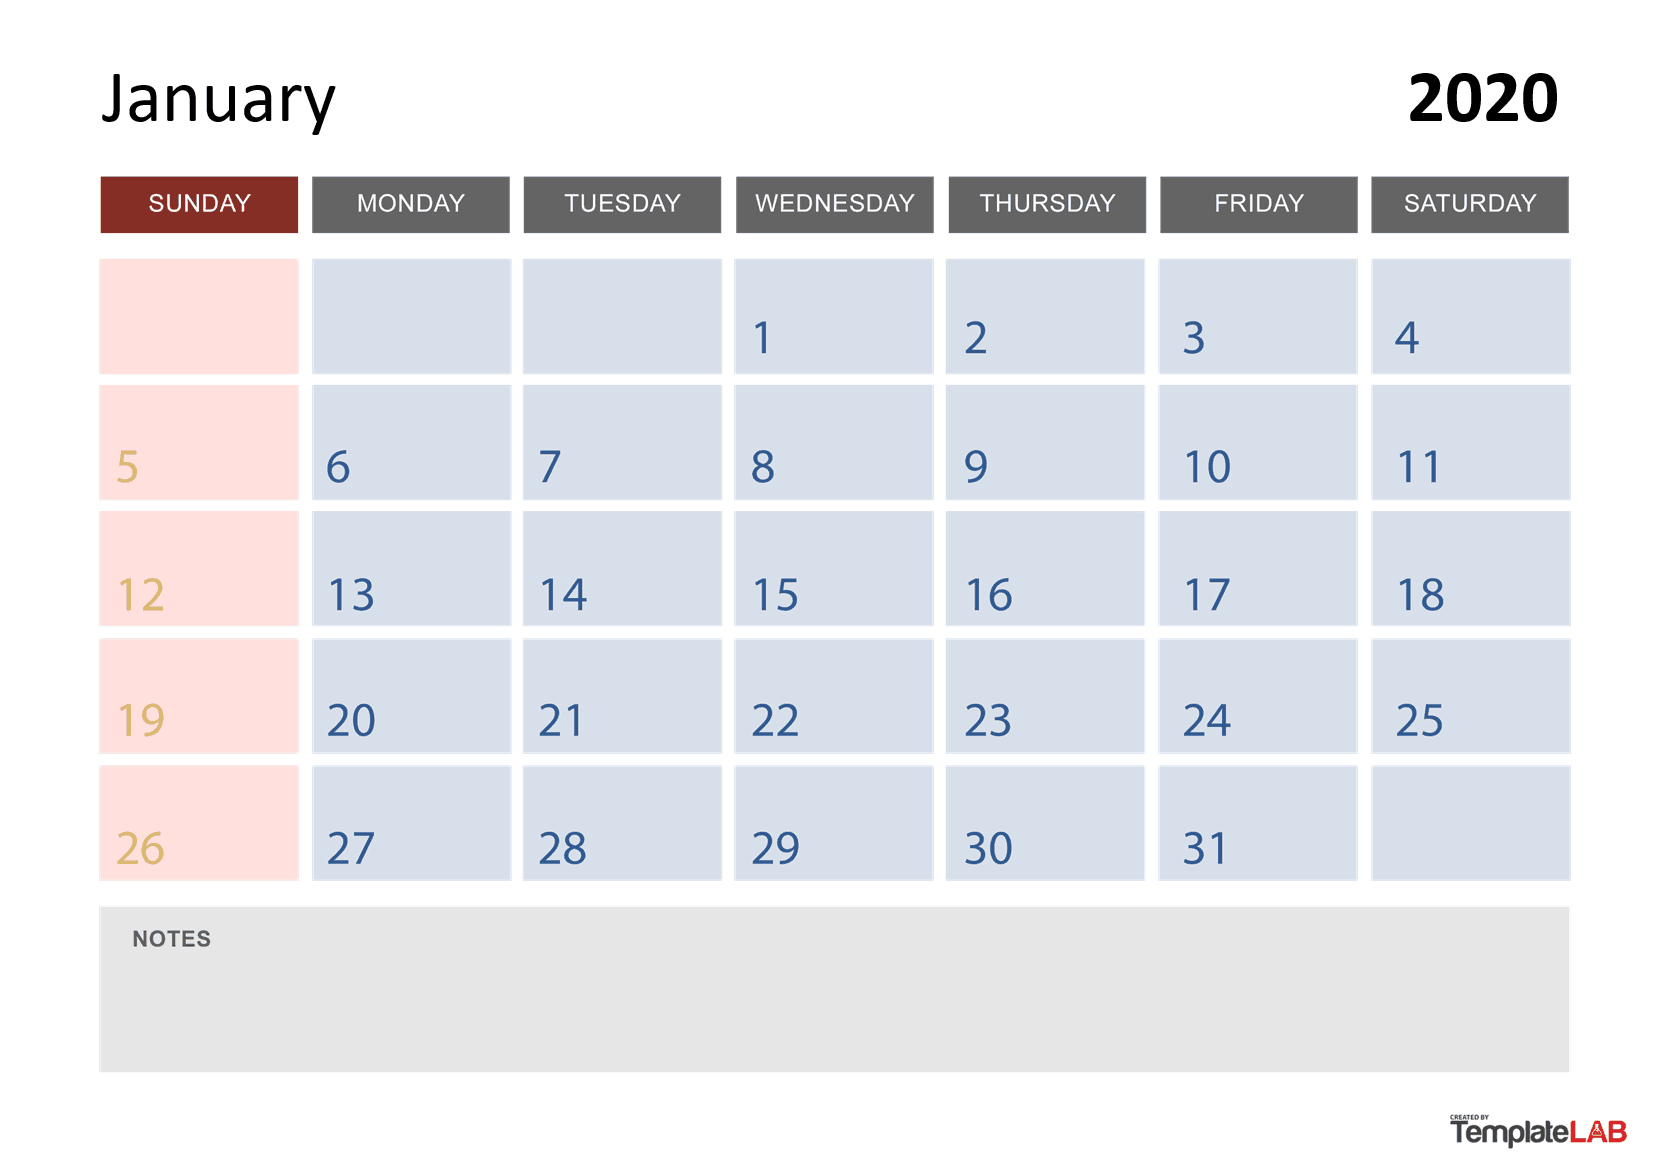 [%2020 Printable Calendars [Monthly, With Holidays, Yearly] ᐅ|2020 Calendar Monthly|2020 Calendar Monthly%]